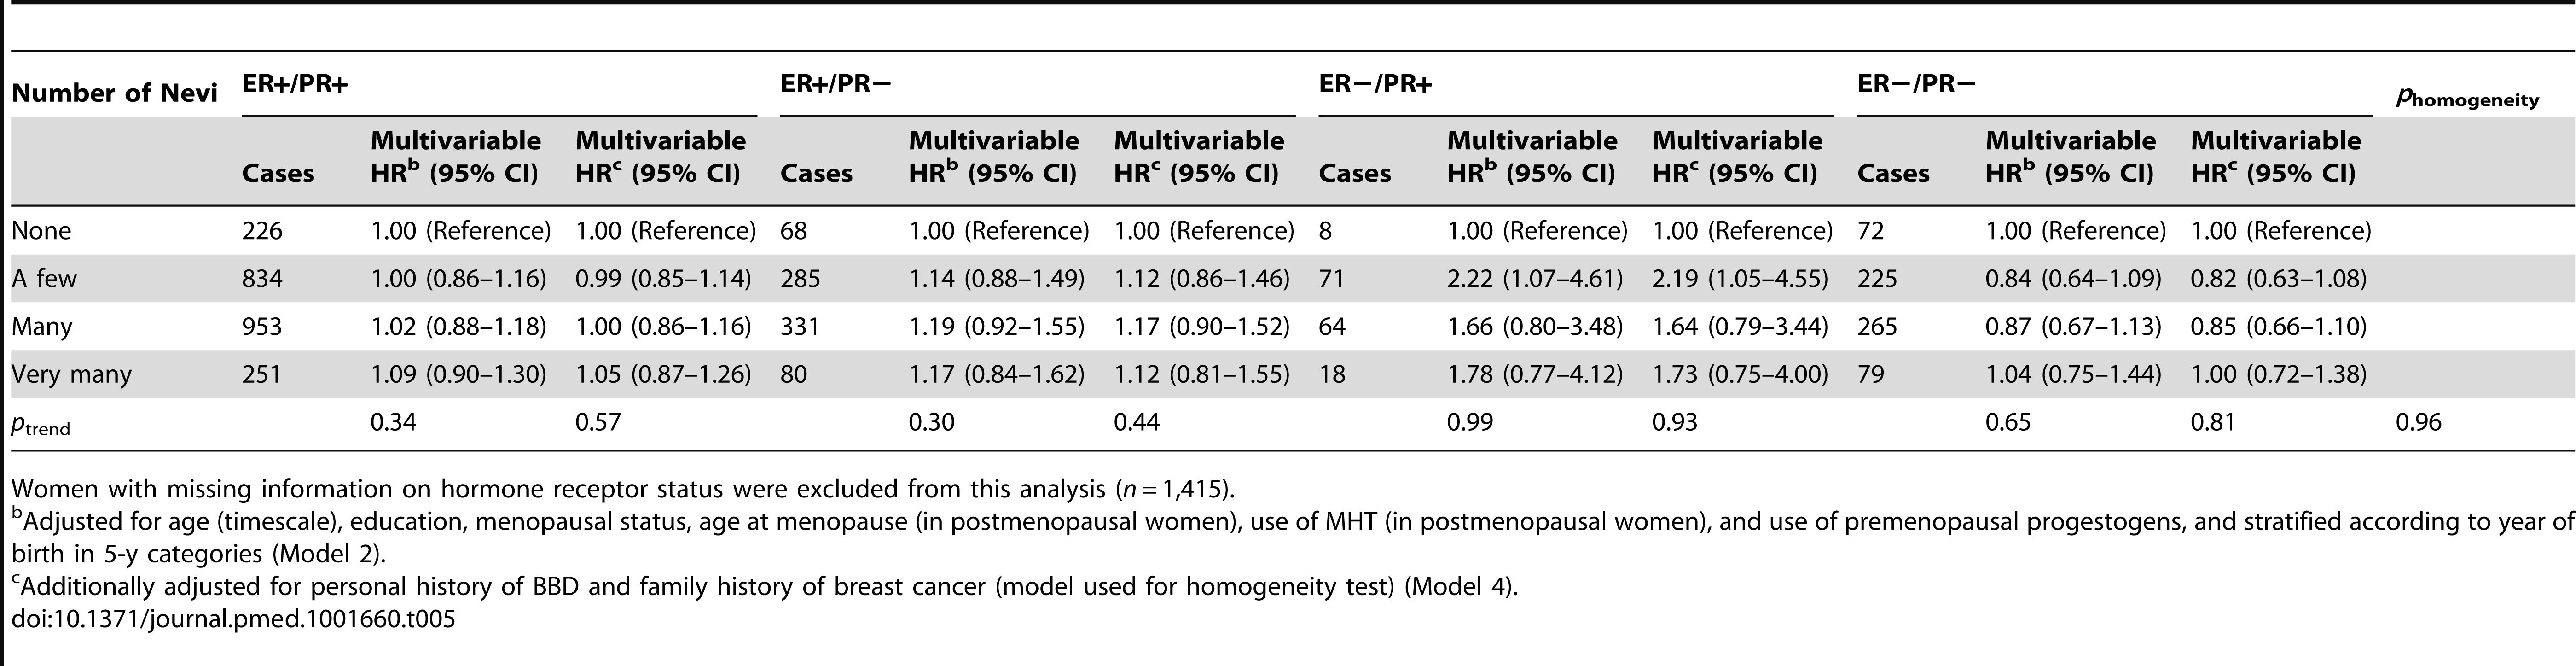 Hazard ratios and 95% confidence intervals for risk of breast cancer in relation to number of nevi, stratified by hormonal receptor status, E3N cohort (<i>n = </i>88,387).